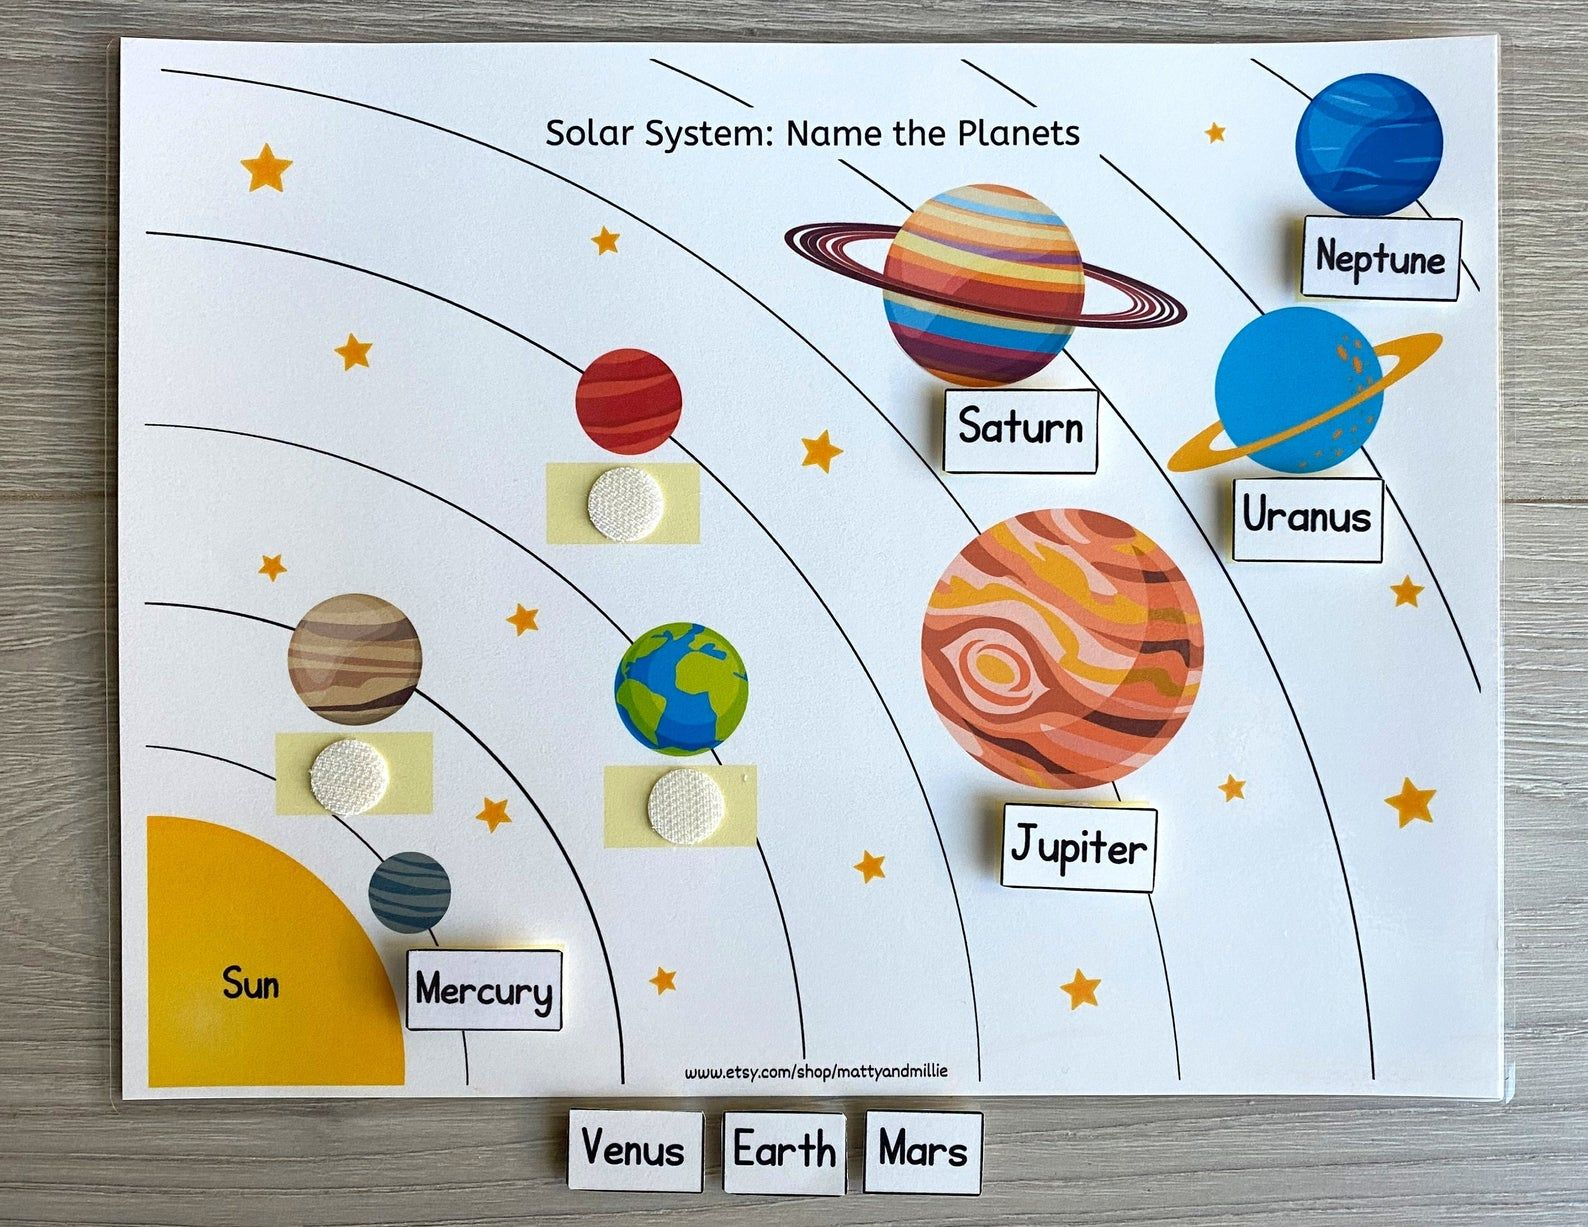 Solar System Worksheet Busy Book Pages Preschool Busy Book Etsy In 2021 Solar System Worksheets Solar System Solar System Projects